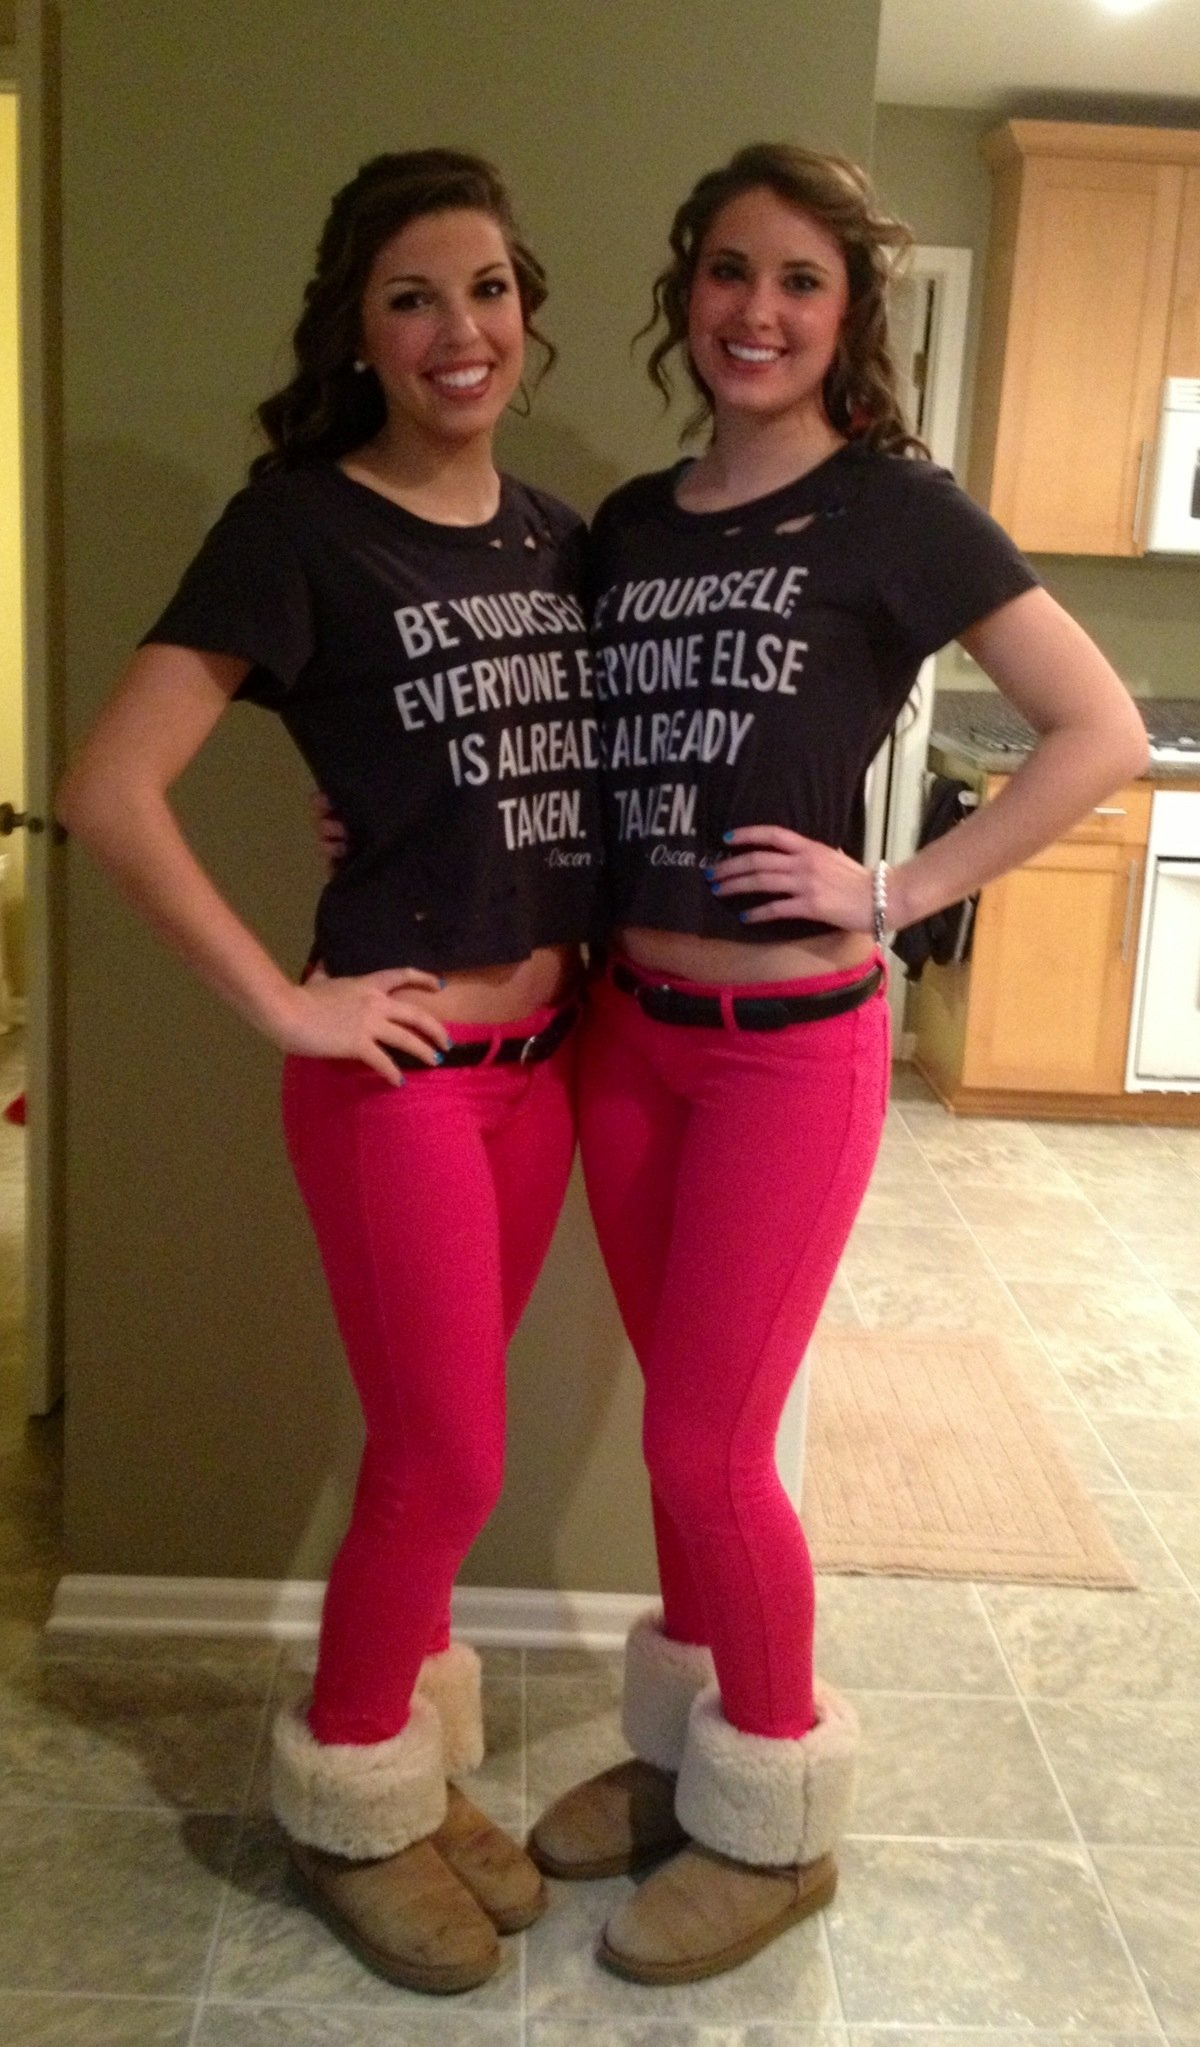 10 Fantastic Halloween Costume Ideas For Three People best friend twins 3 funny halloween costumes funny stuff 6 2021